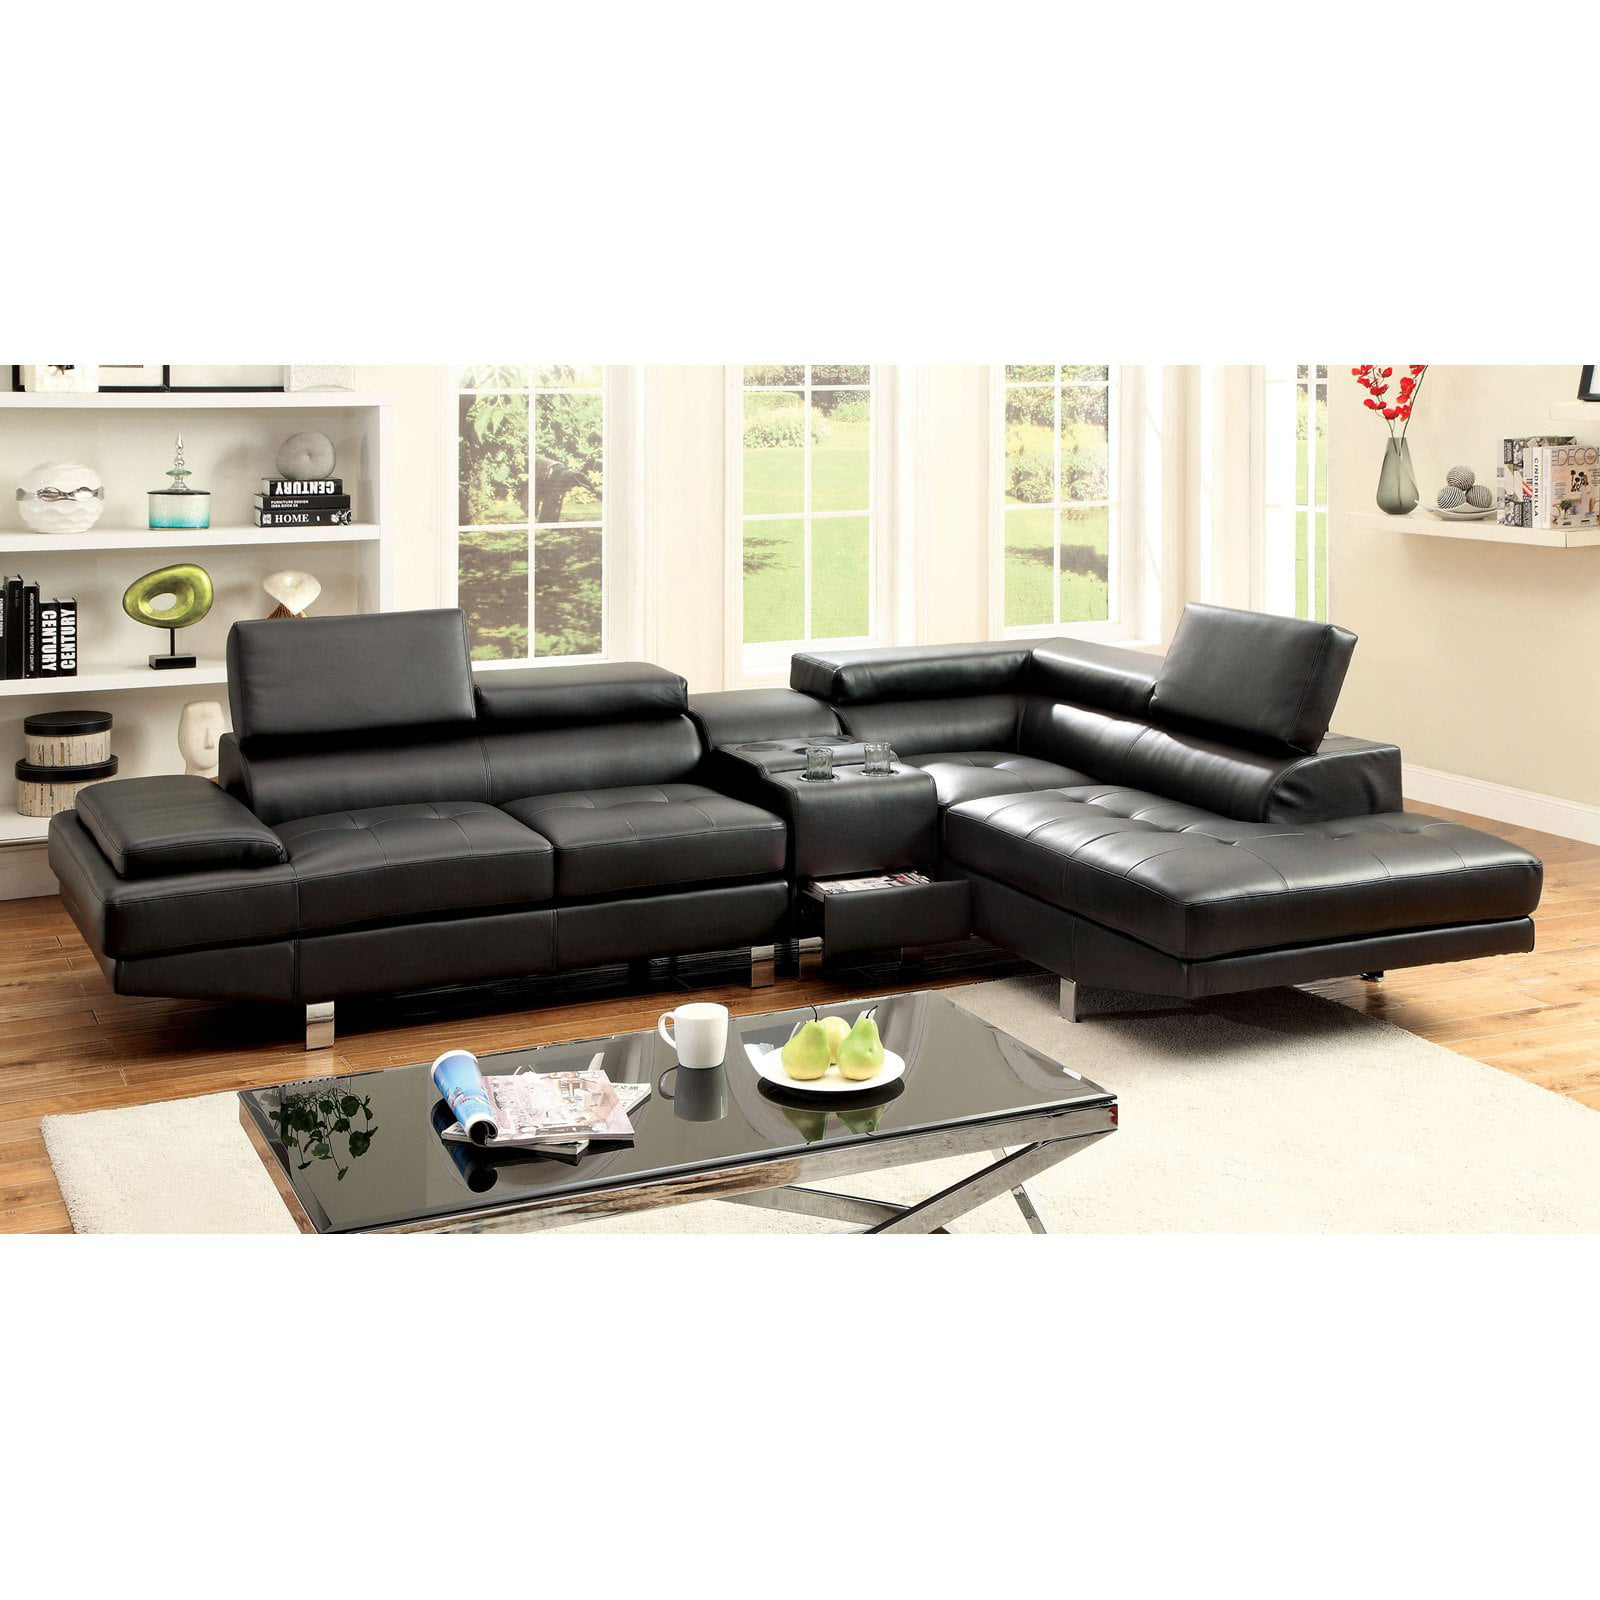 Furniture of America Hope 2 Piece Sectional Sofa with Optional